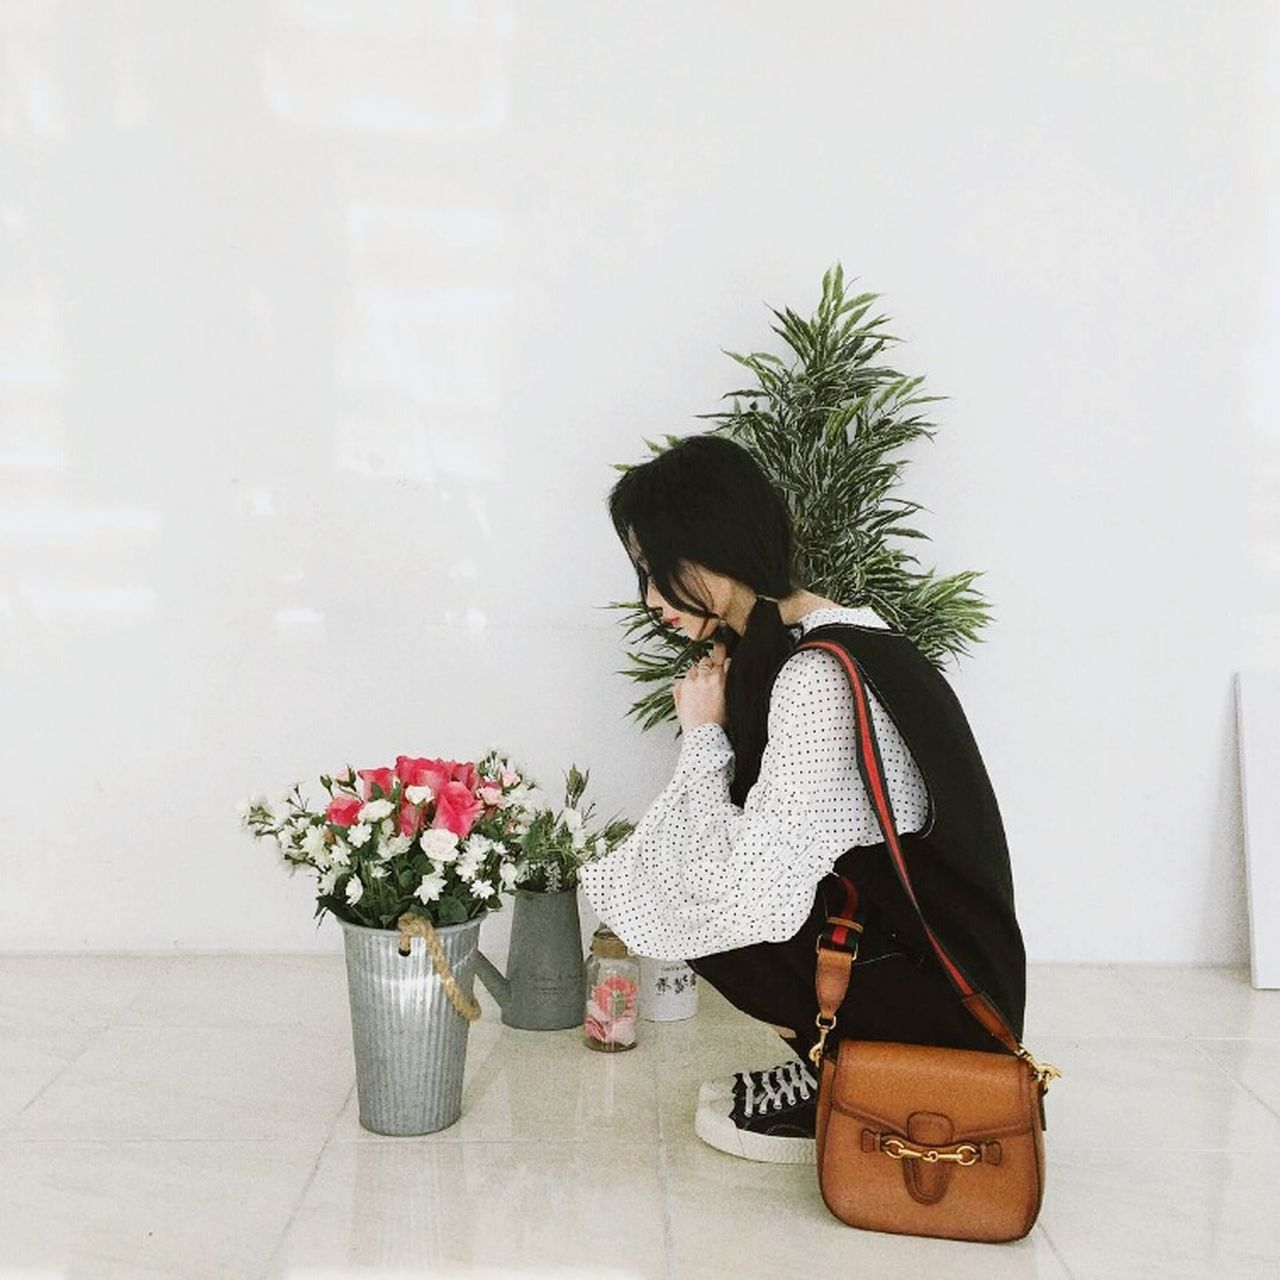 flower, one person, real people, full length, lifestyles, purse, standing, women, day, indoors, young women, young adult, nature, people